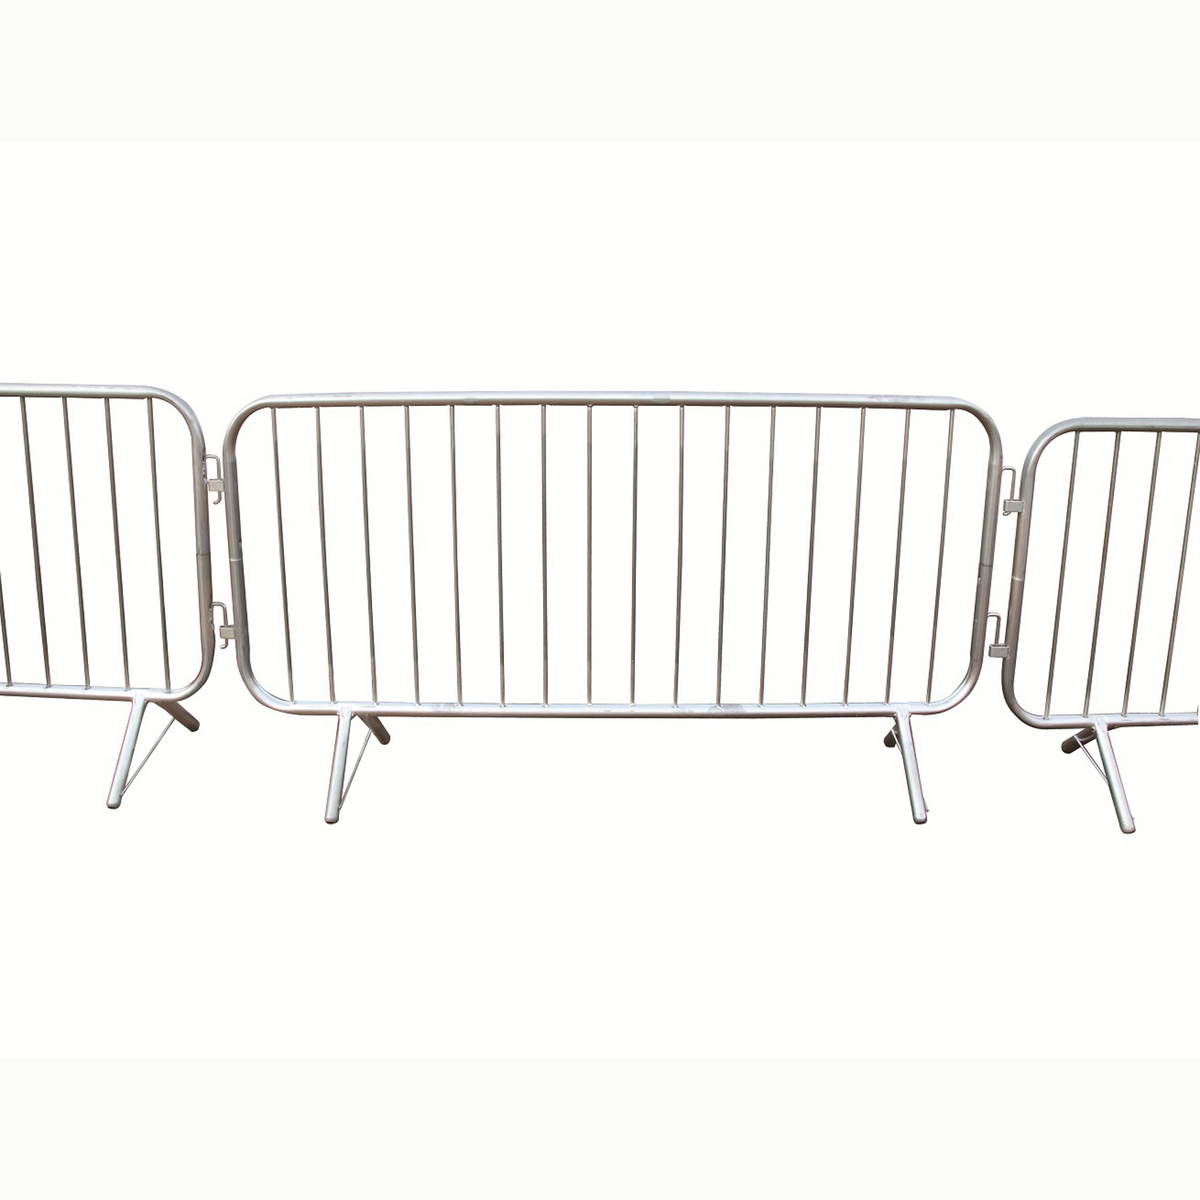 Heavy-duty-crowd-control-barriers